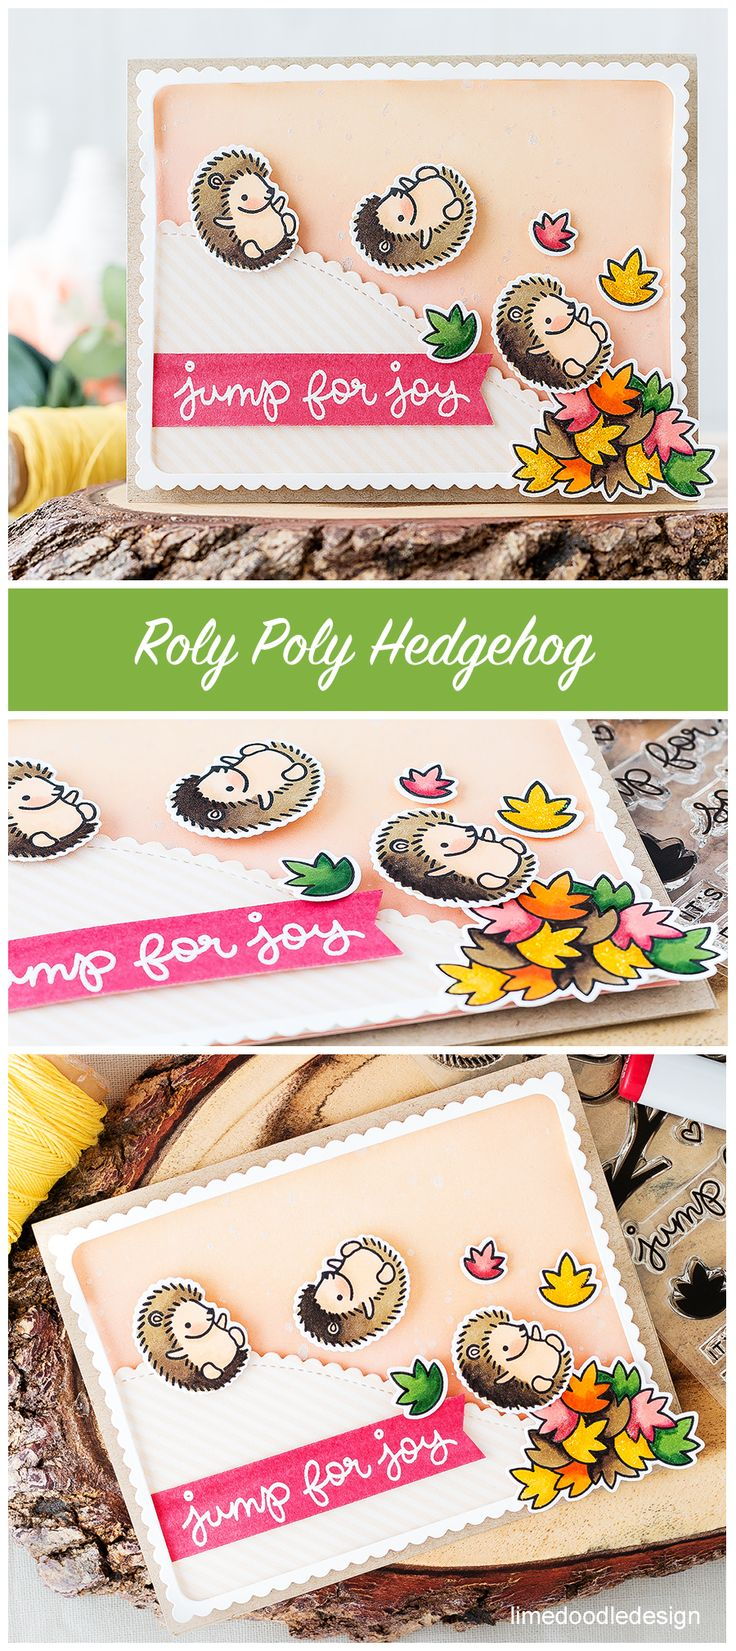 Lawn Fawn Jump for Joy; hedgehog; roly poly hedgehog; fall; autumn leaves card; Lime Doodle